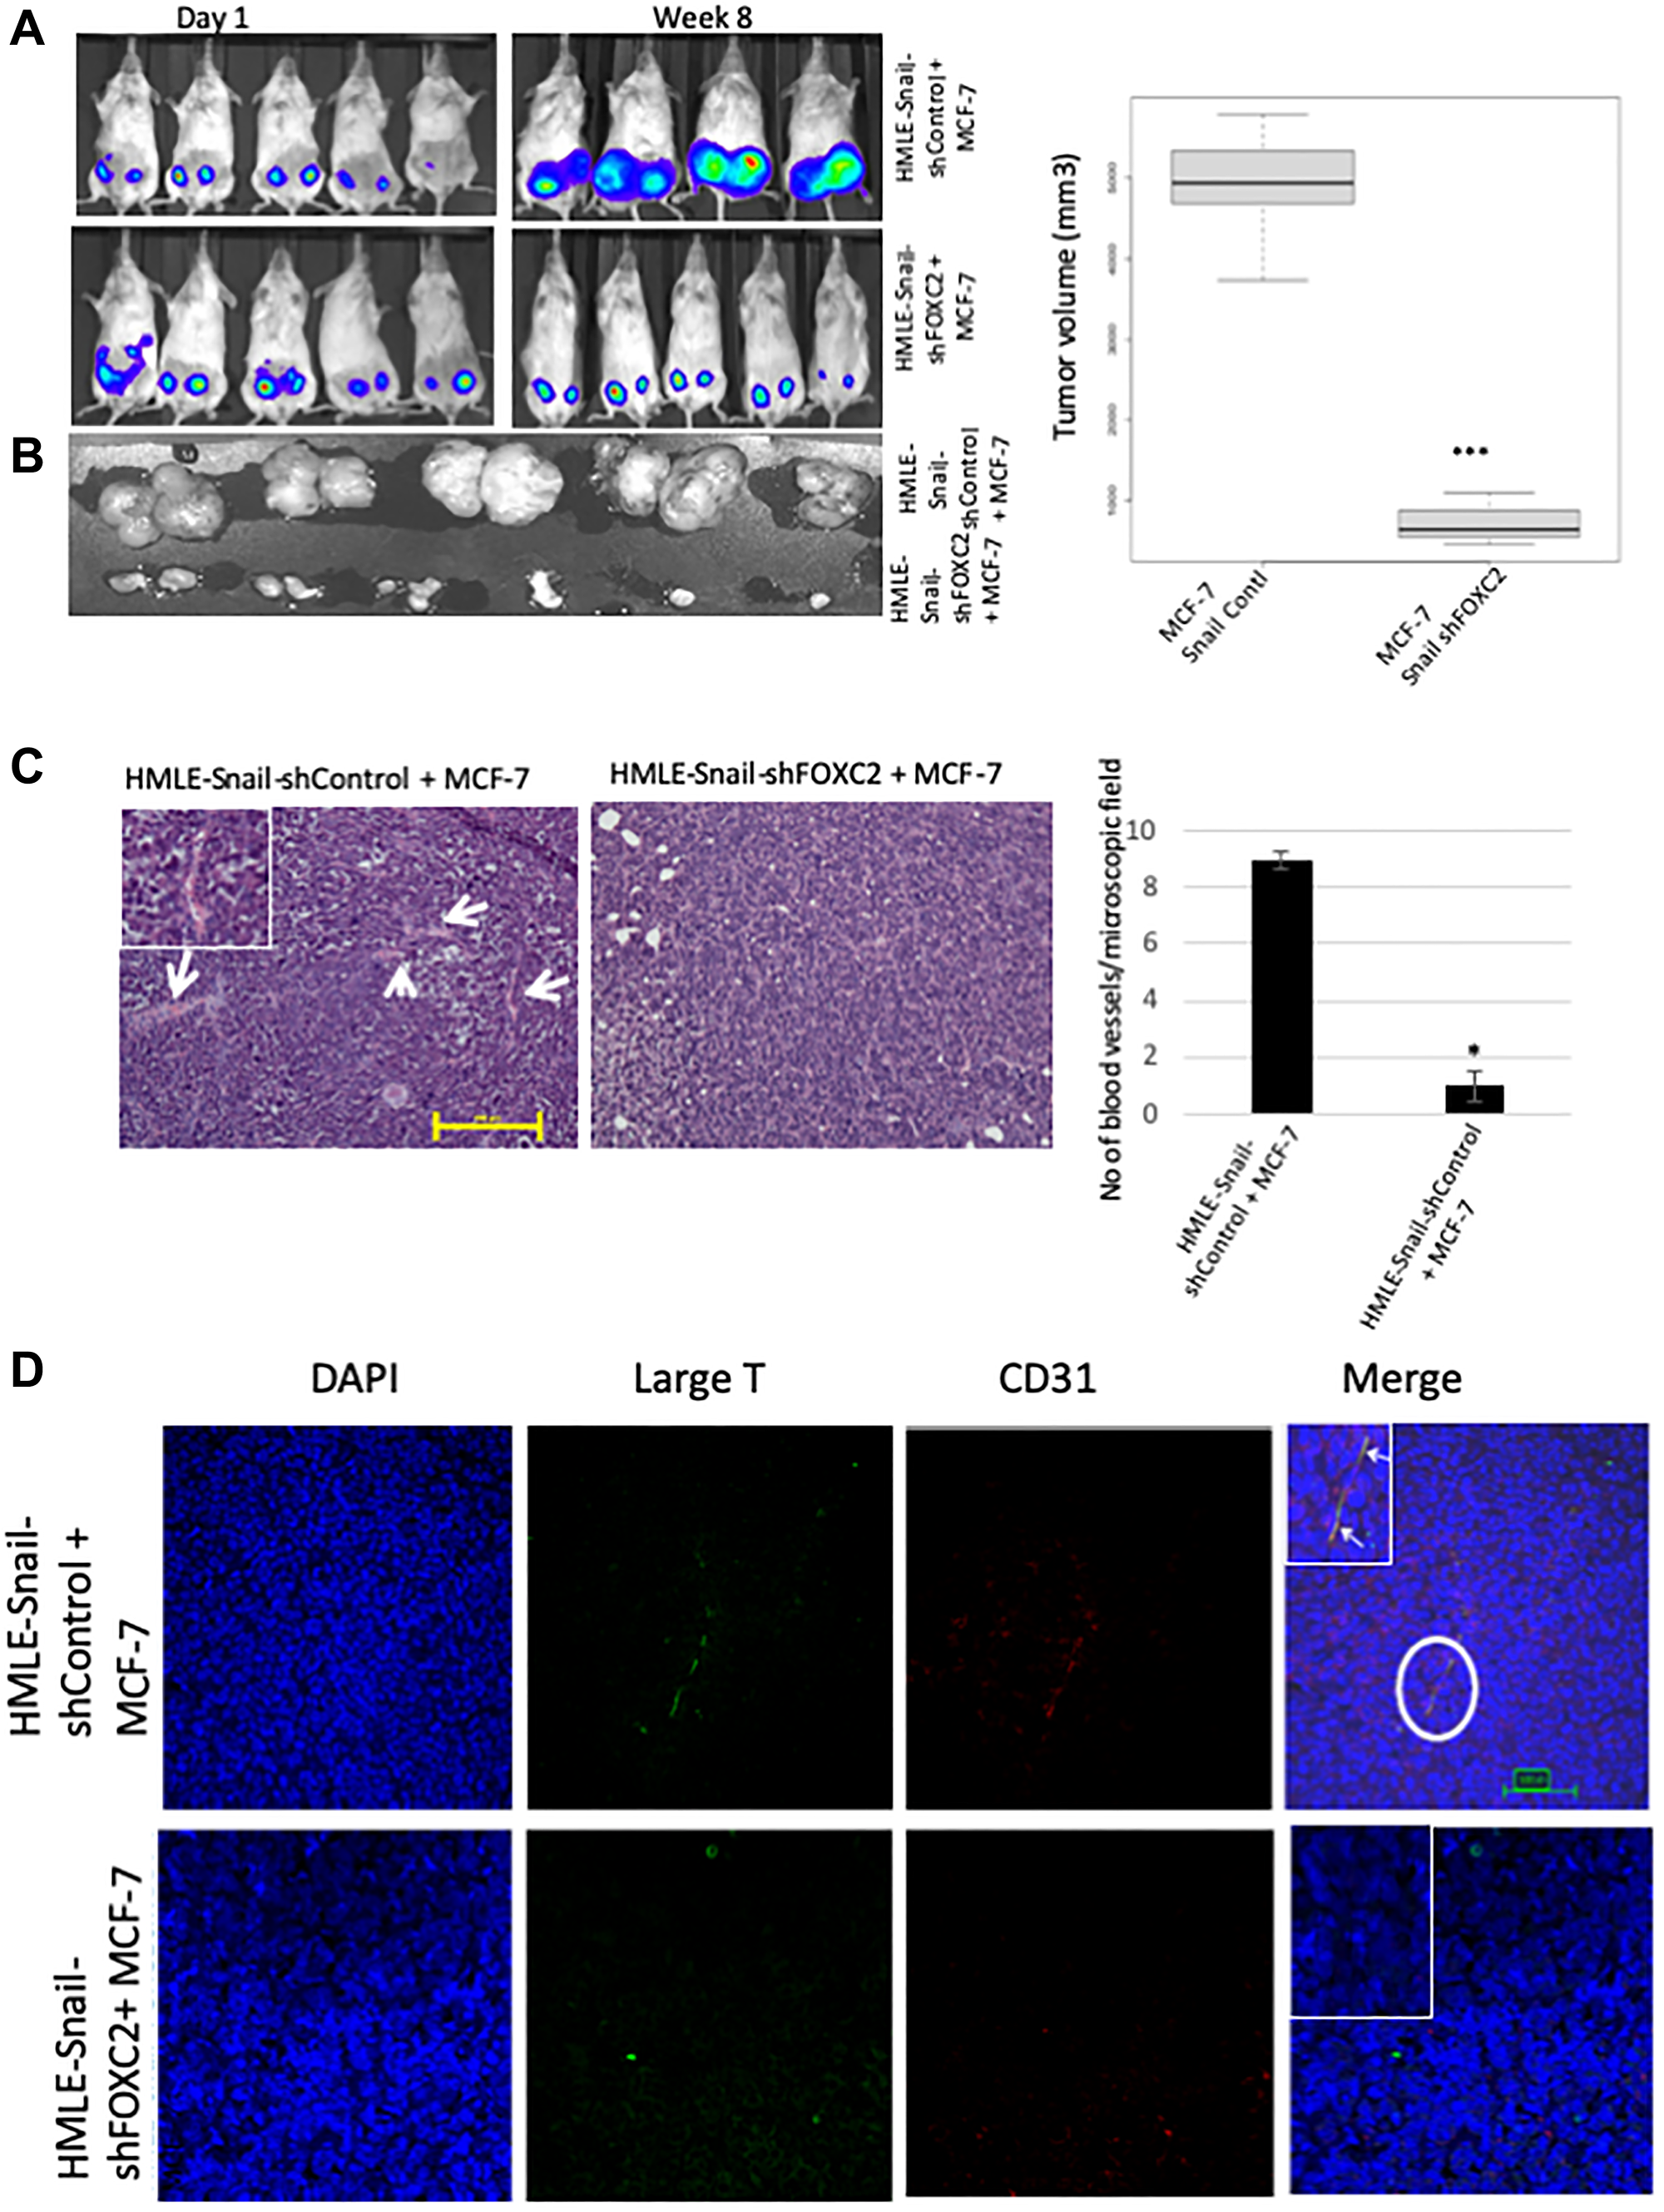 FOXC2 is necessary for the ability of cells that have undergone EMT to augment neoangiogenesis.